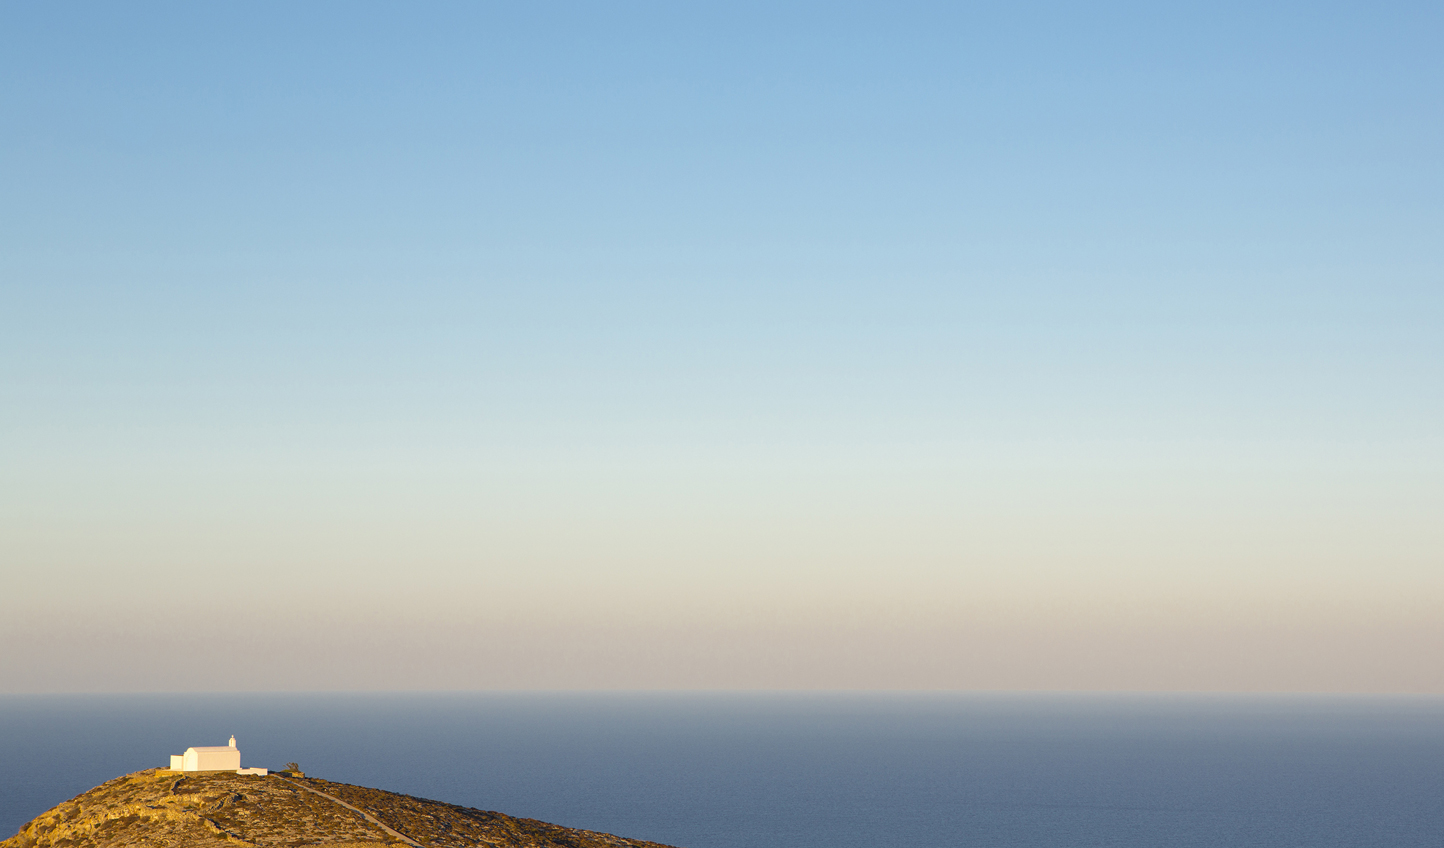 Splendid isolation on Folegandros